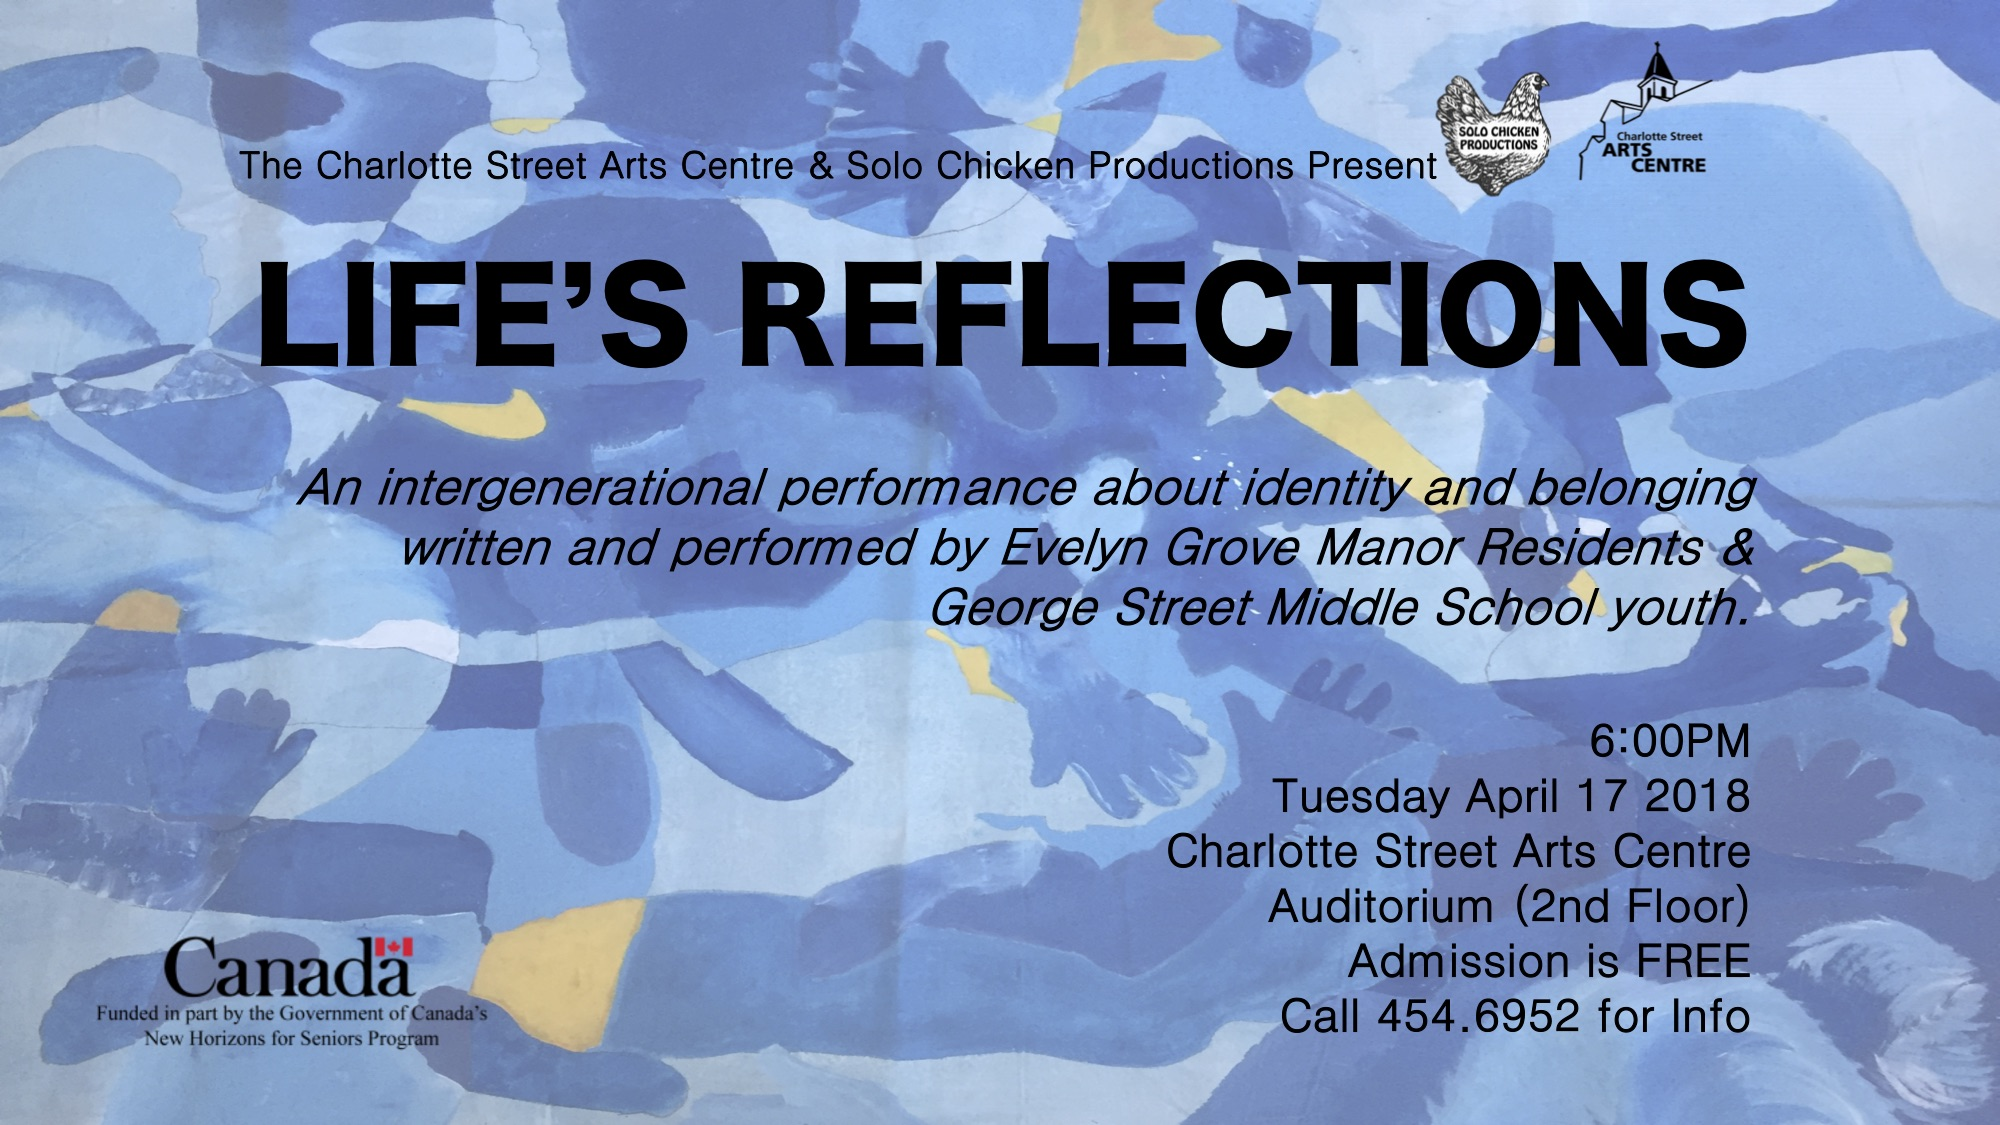 Life's Reflection Poster - March 26 2018.jpg